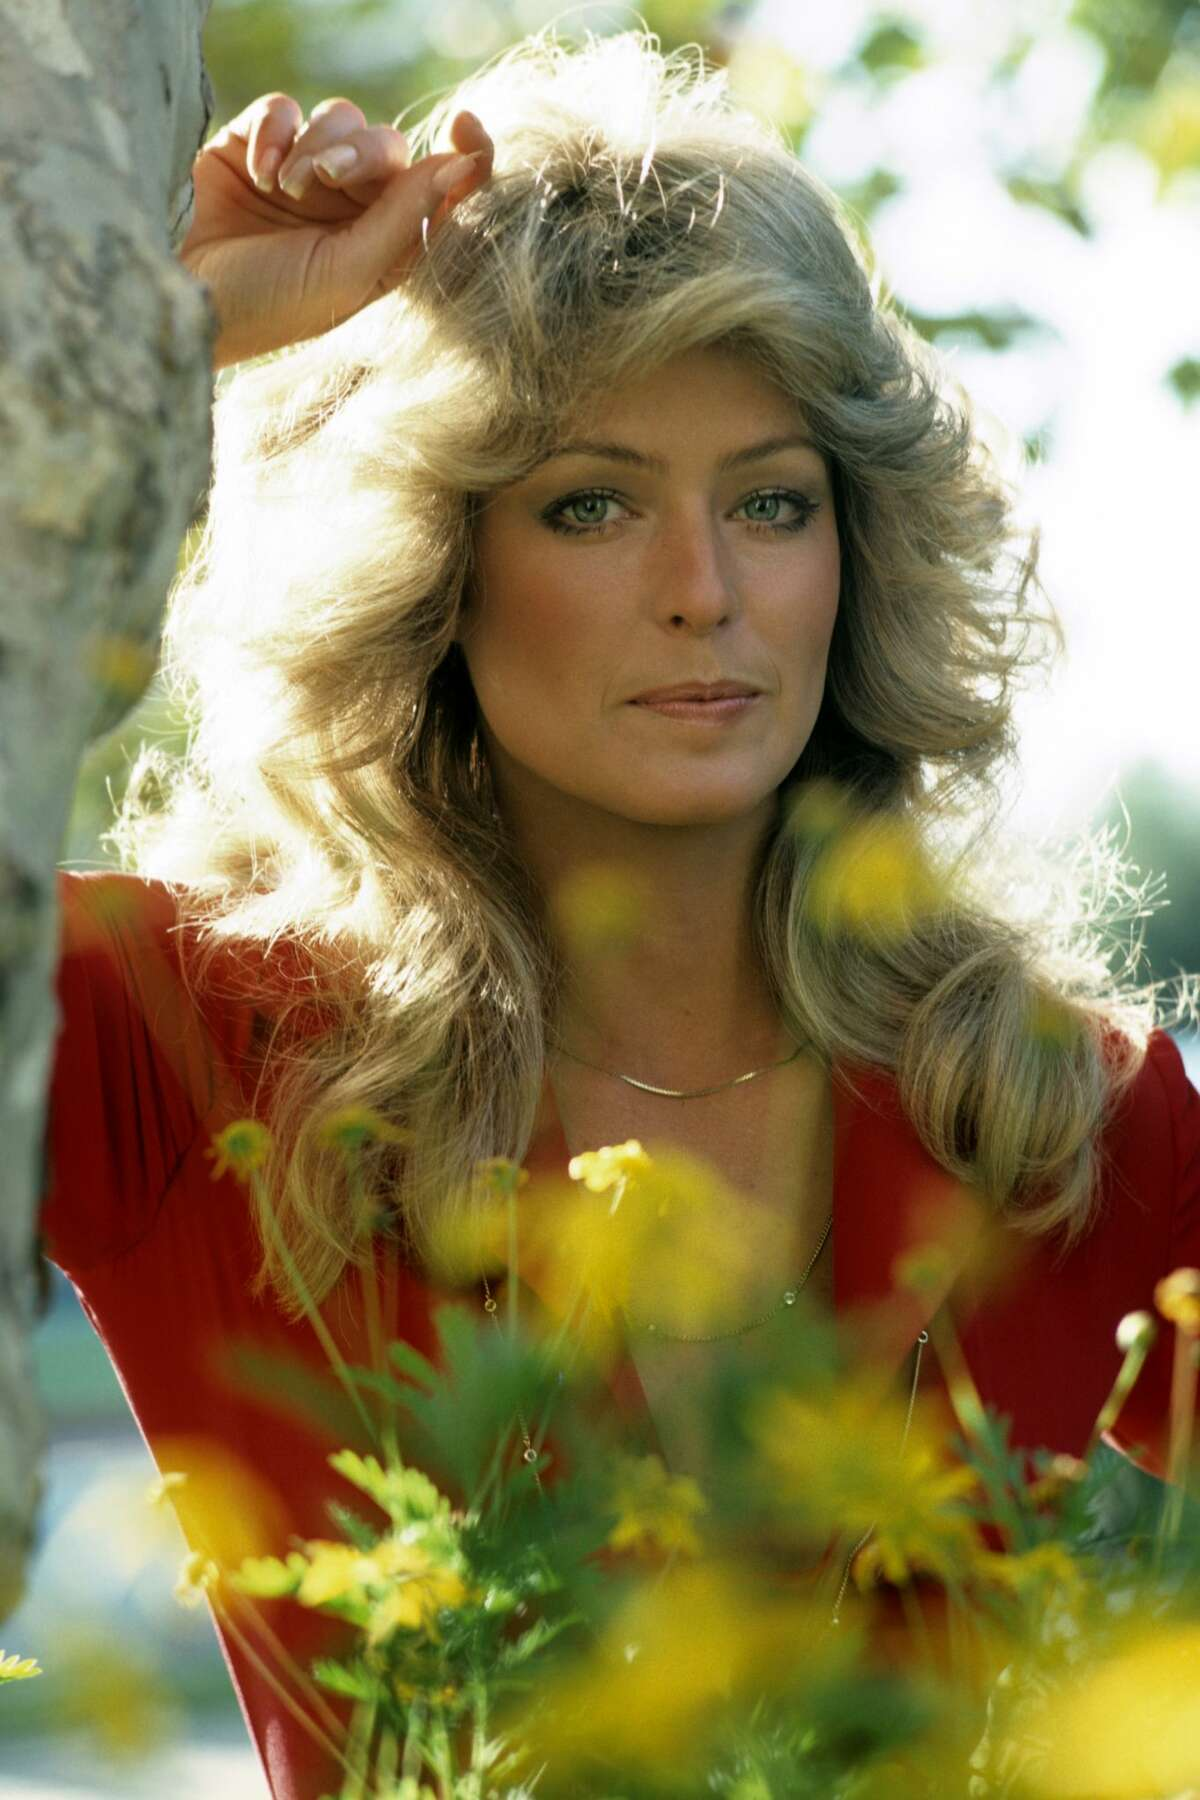 UNITED STATES - JUNE 15: CHARLIE'S ANGELS - AD Gallery - 6/15/76 Farrah Fawcett (Photo by ABC Photo Archives/Disney General Entertainment Content via Getty Images)